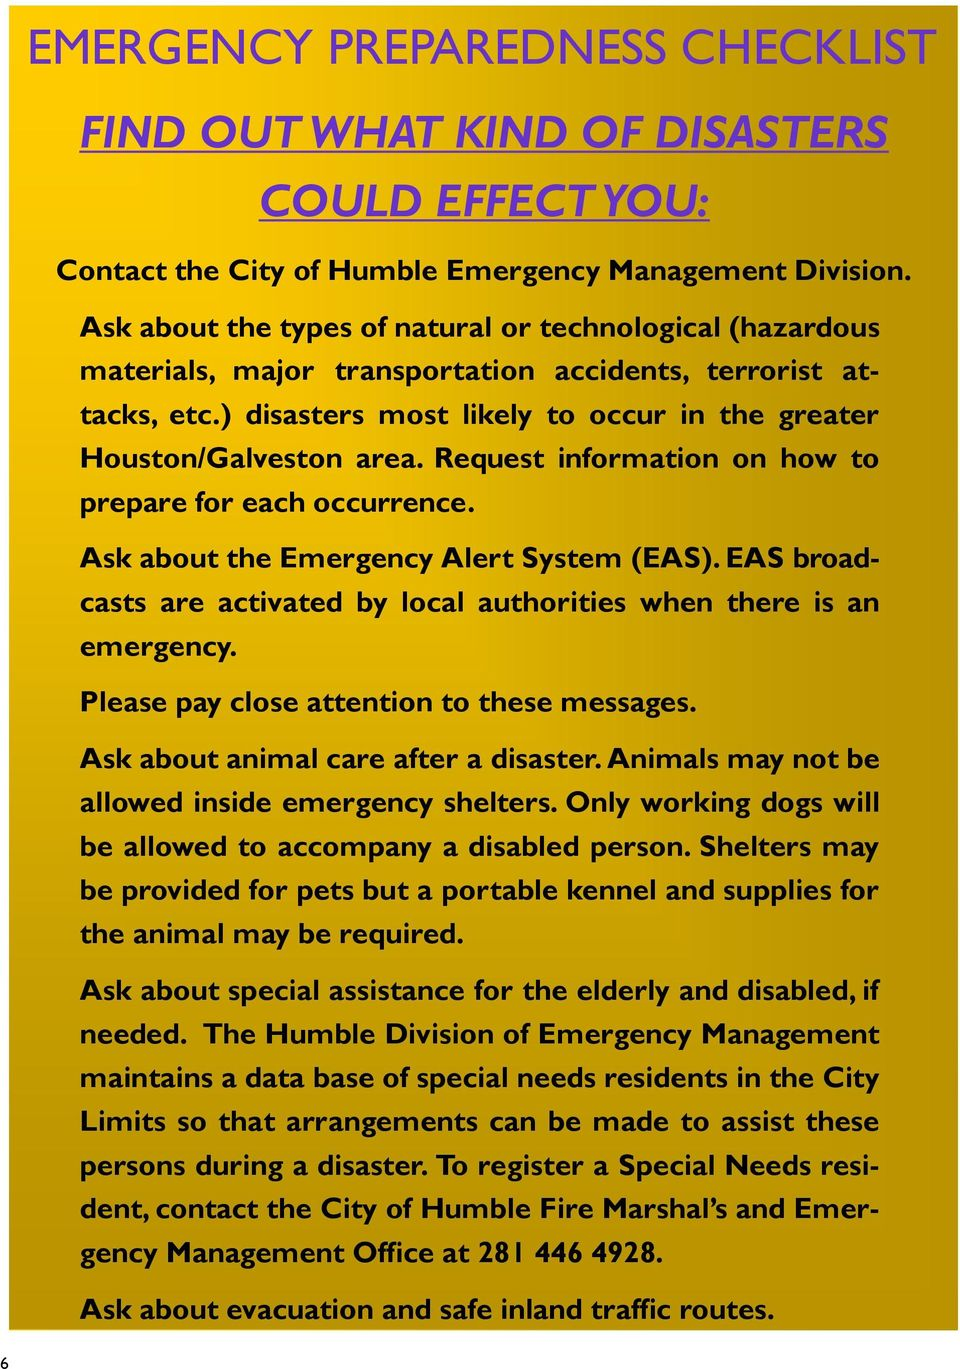 Request information on how to prepare for each occurrence. Ask about the Emergency Alert System (EAS). EAS broadcasts are activated by local authorities when there is an emergency.